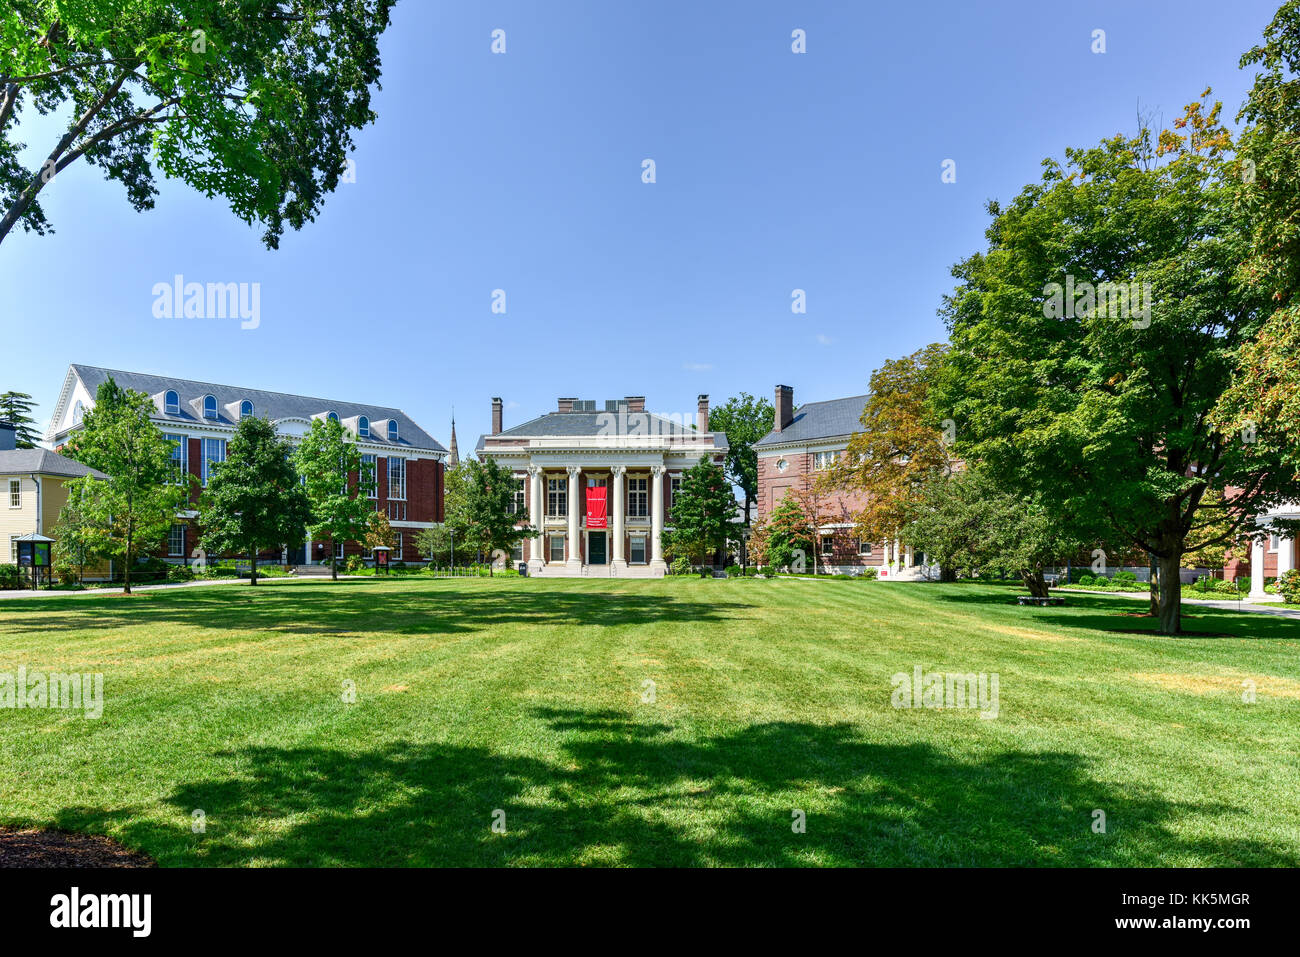 Harvard College Admissions Visitor Center in Boston, Massachusetts. - Stock Image